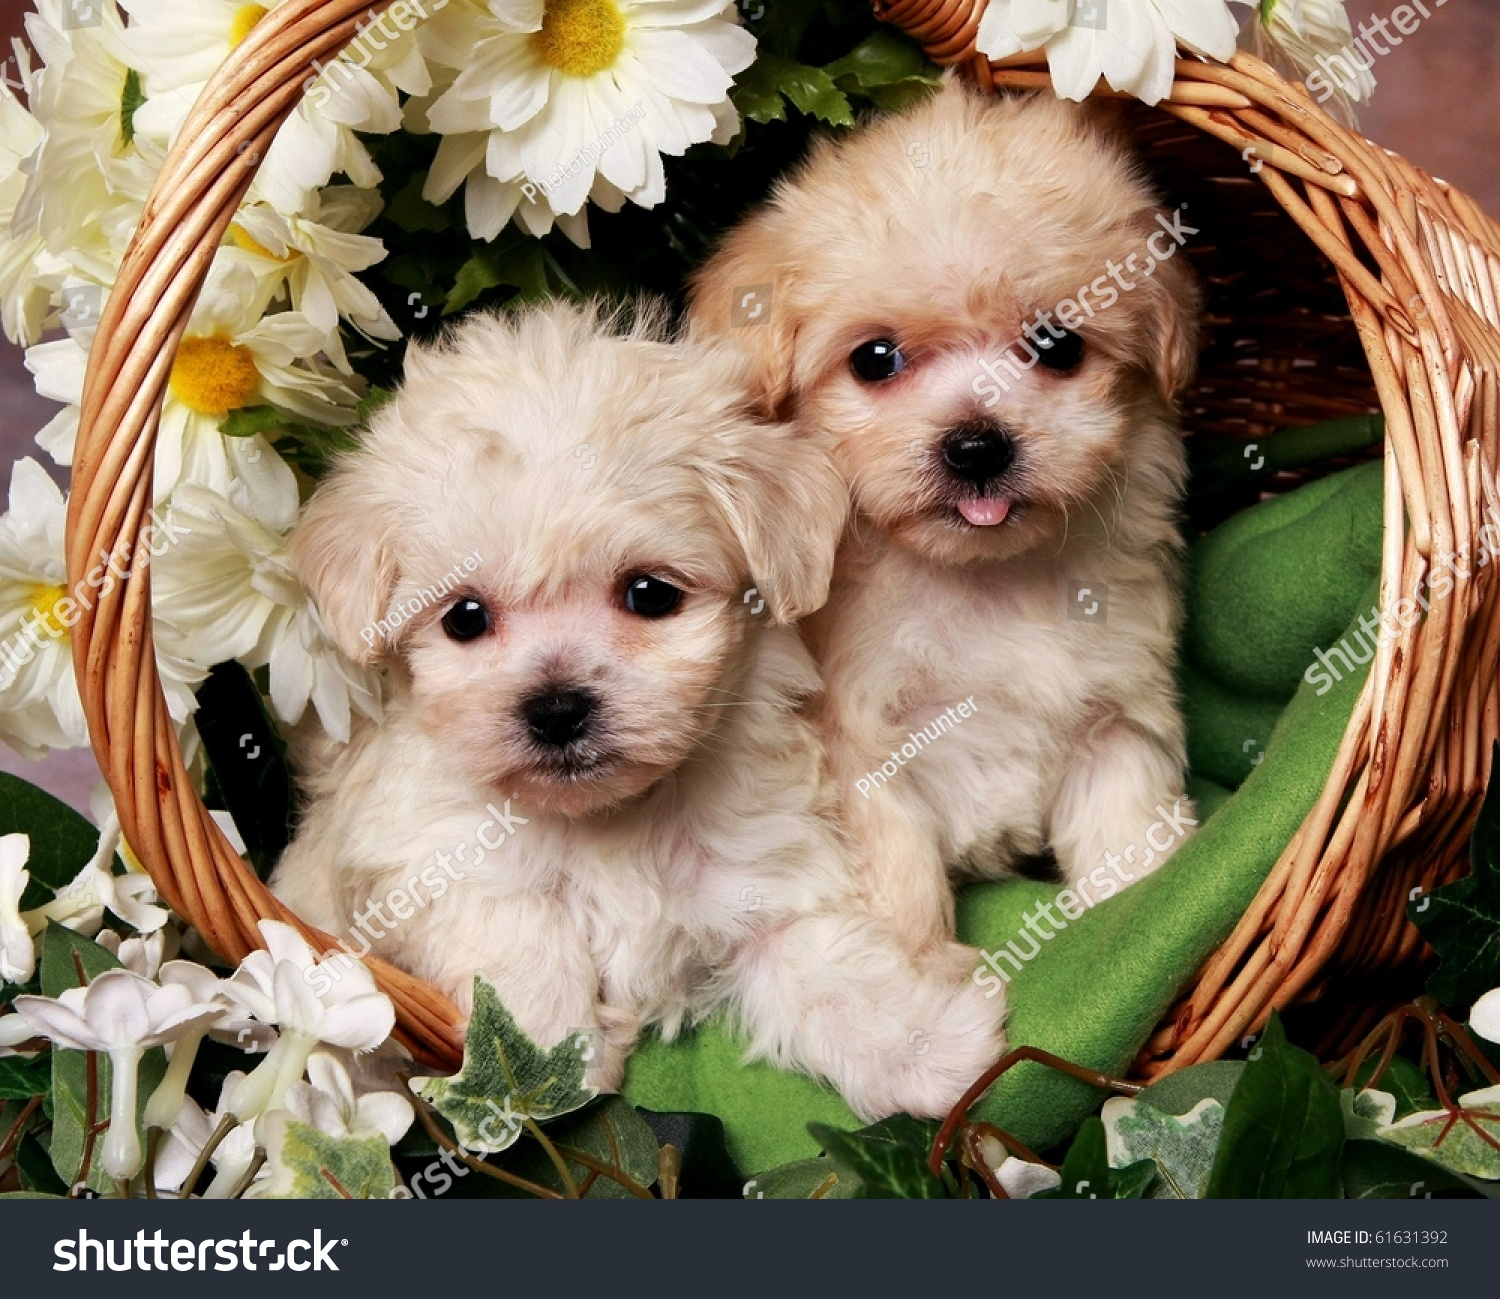 Two Adorable Little Puppies Basket Stock Photo Edit Now 61631392